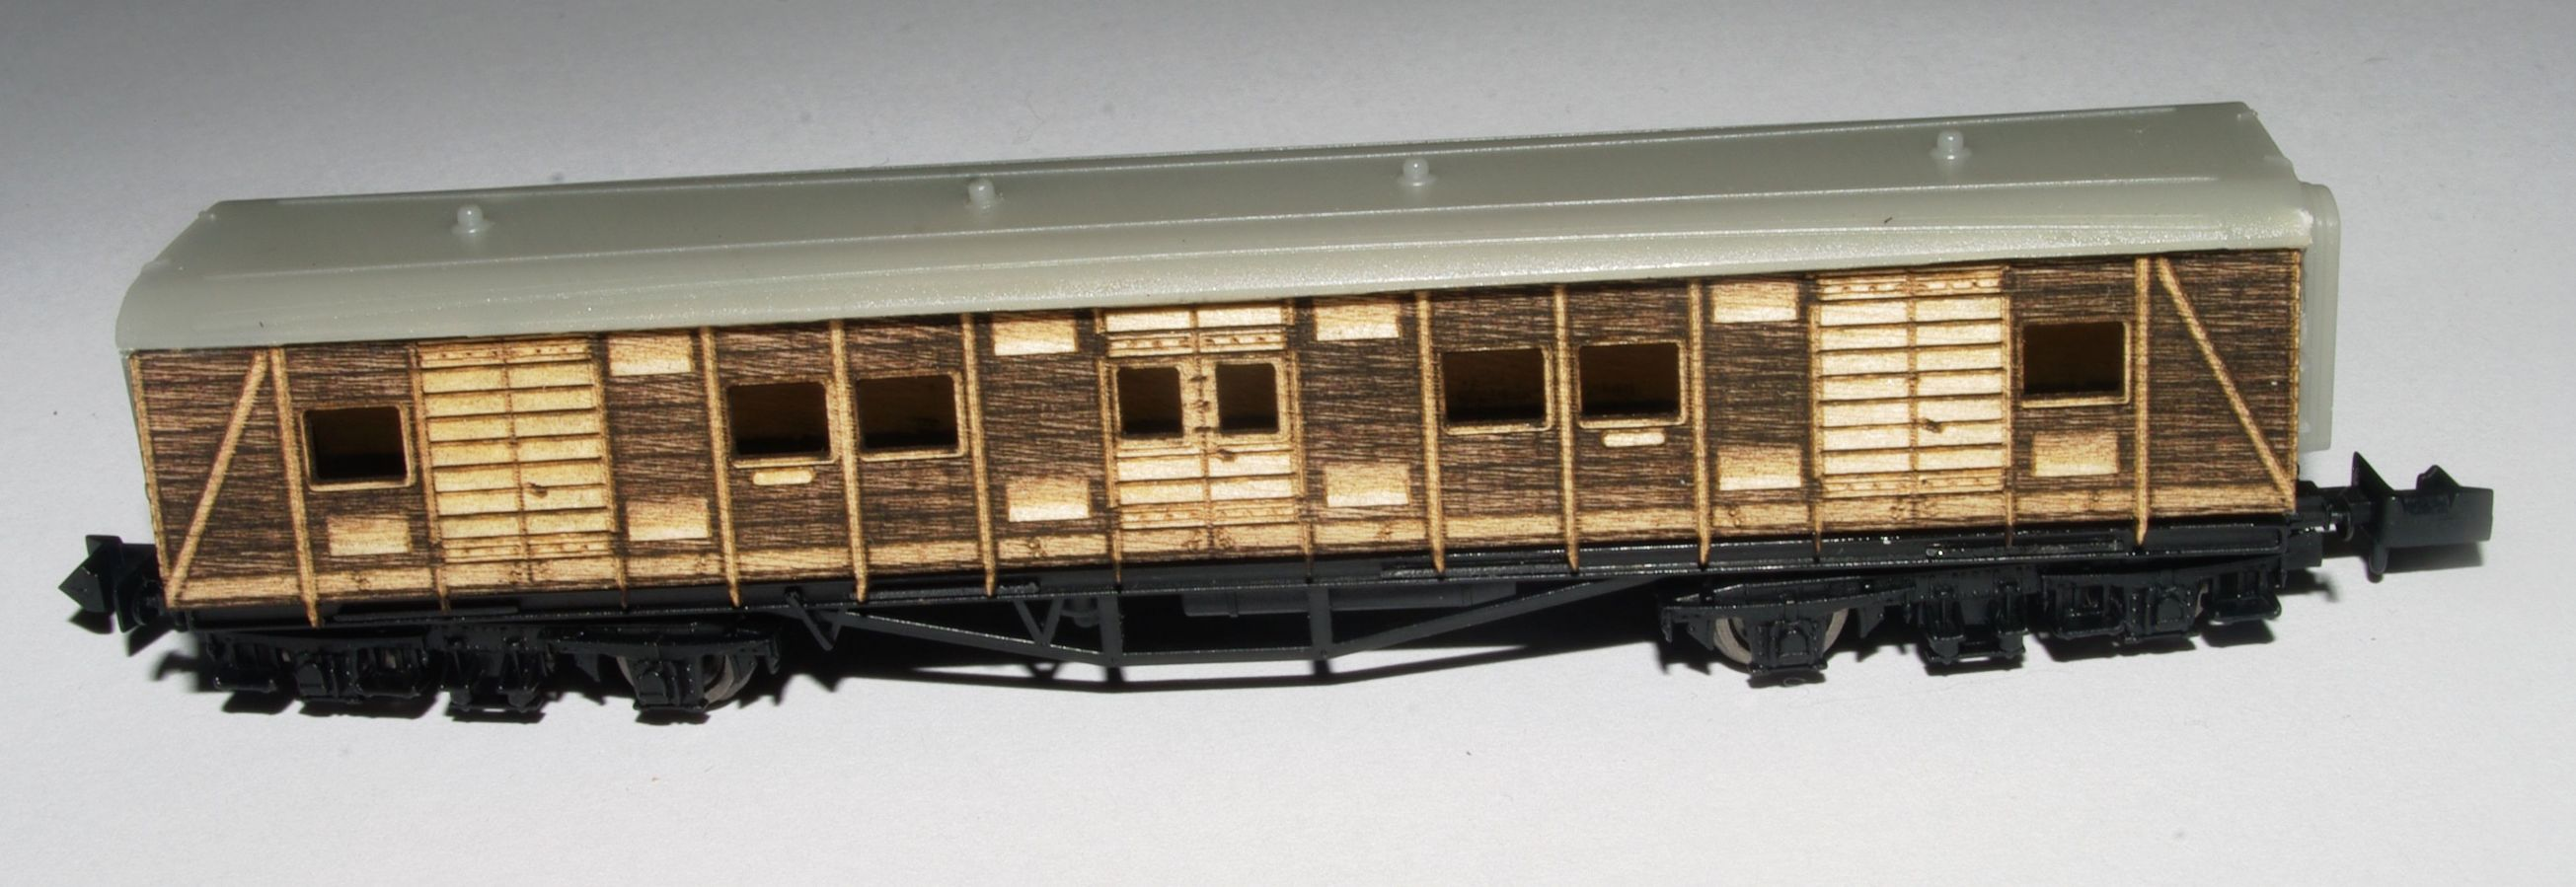 ARCHN0019 Conversion Kit For Dapol Siphon G Maunsell Van B S2464S As Converted Sir Winston Churchill S Funeral